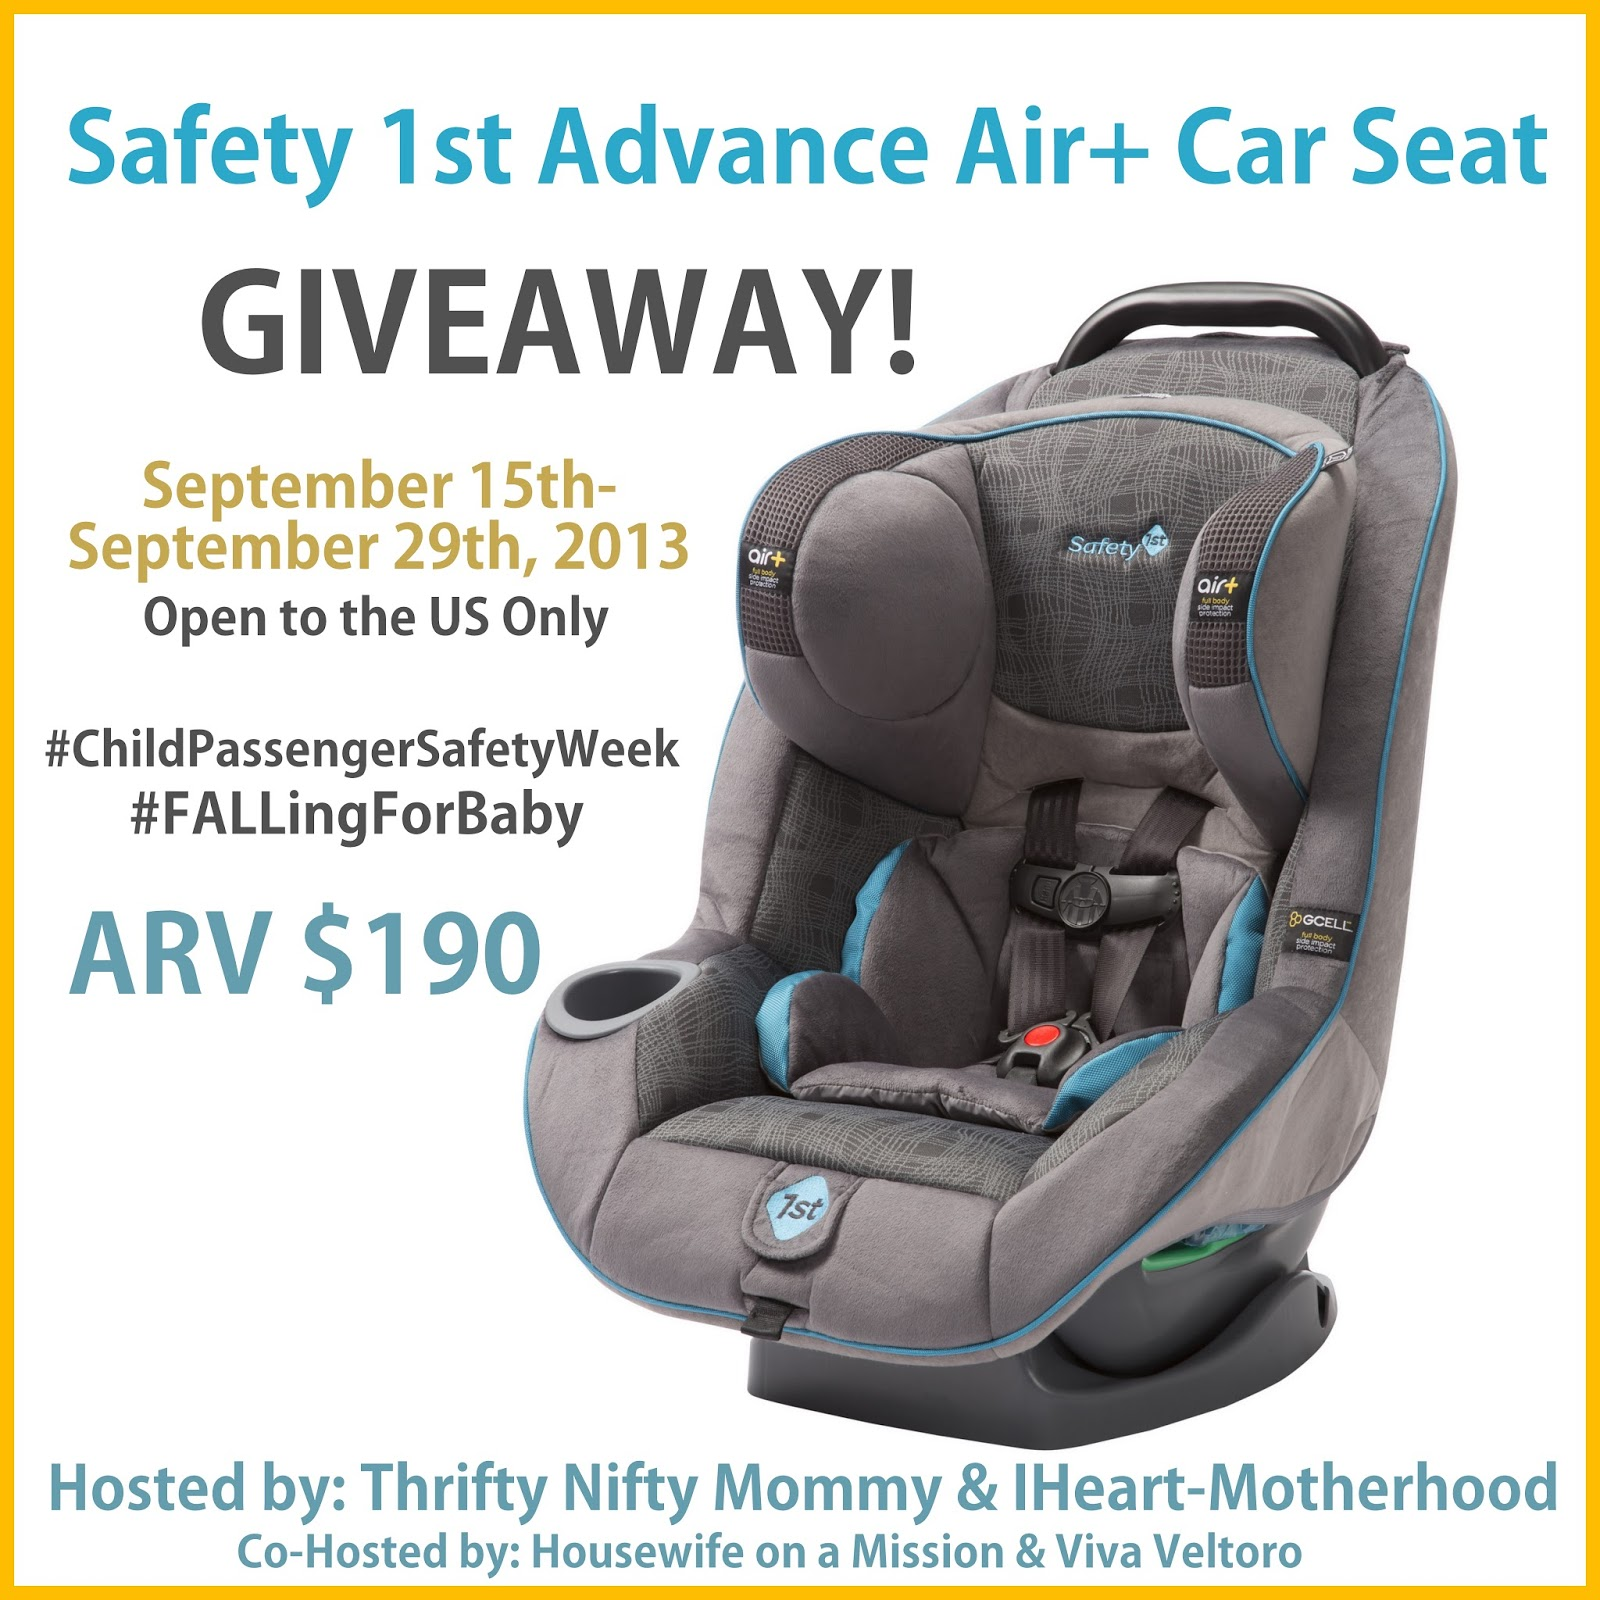 safety 1st advance air car seat giveaway ends 9 29 everything mommyhood. Black Bedroom Furniture Sets. Home Design Ideas